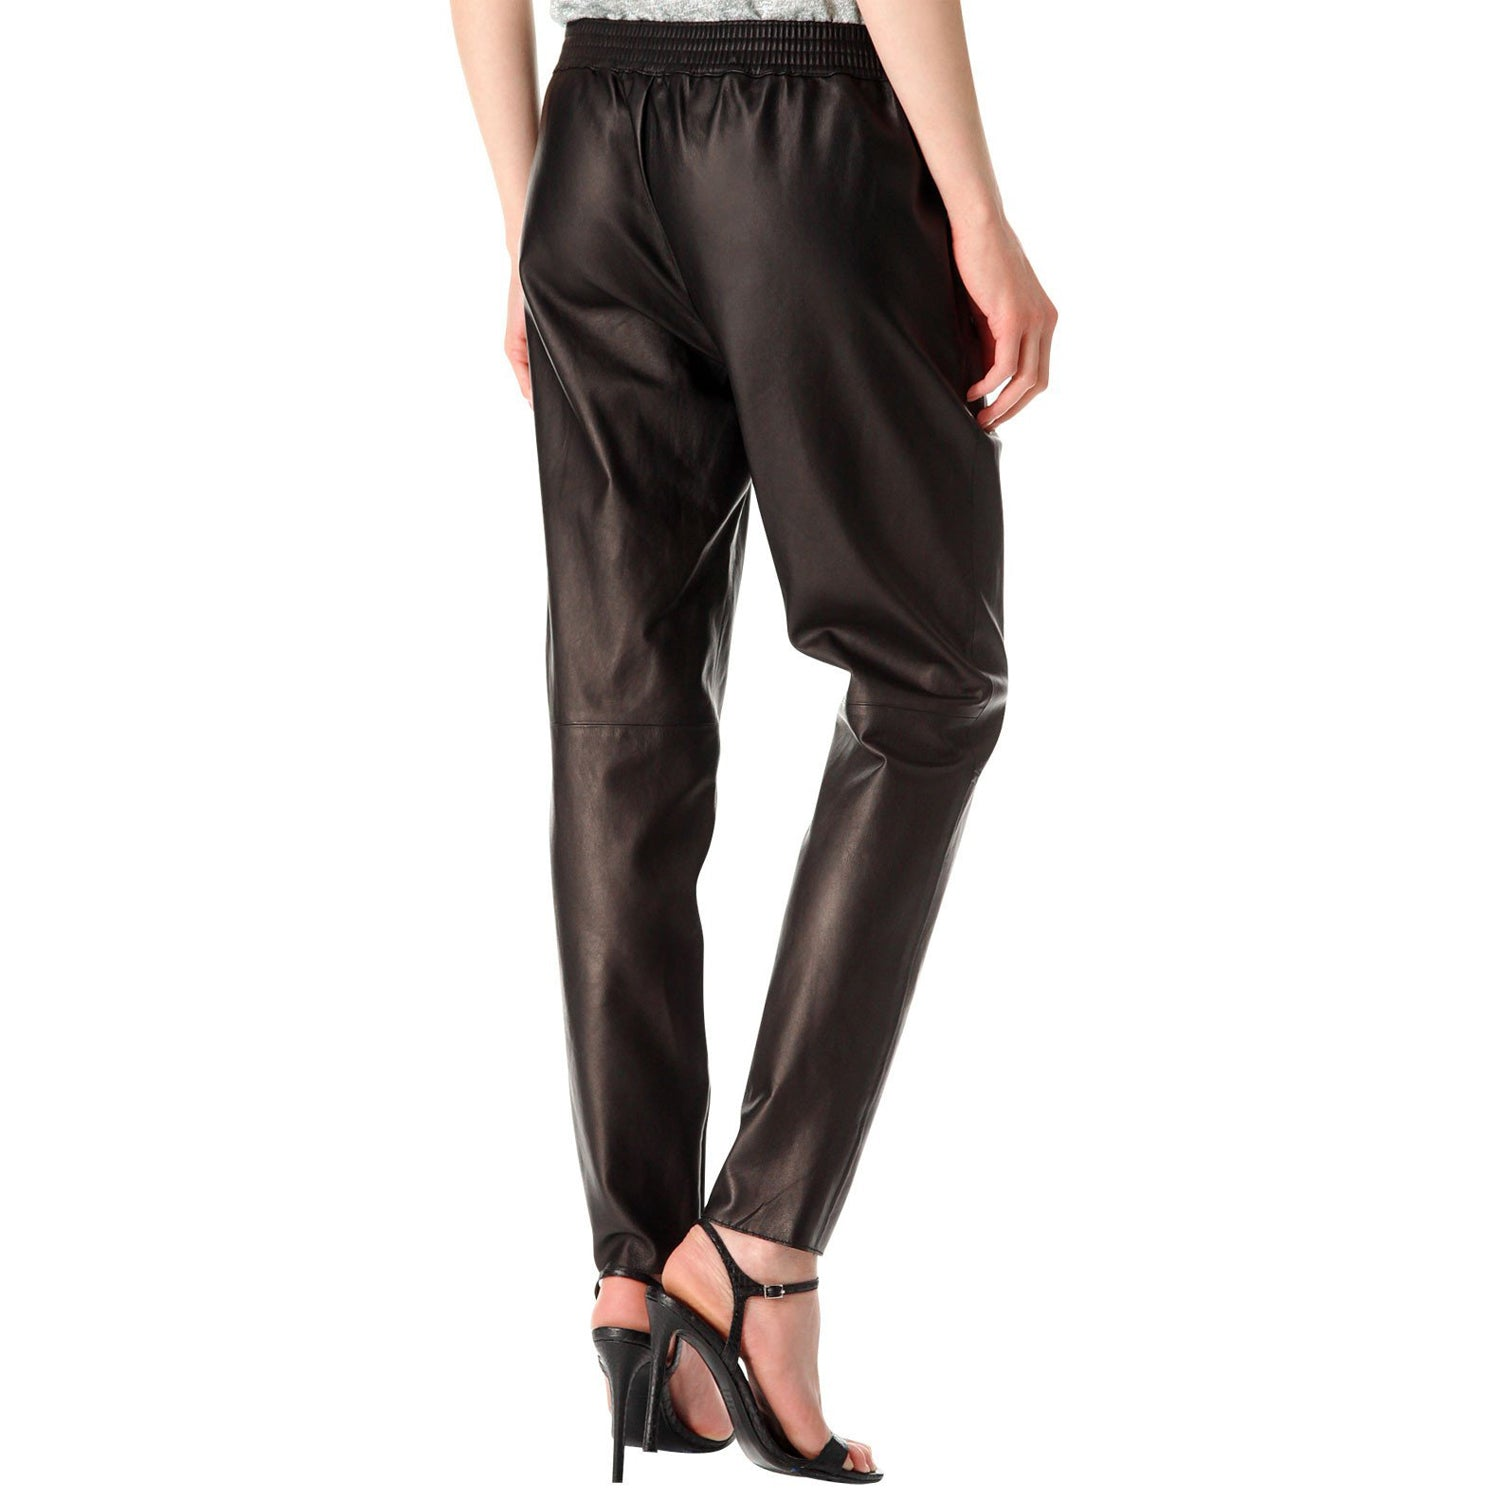 Brown leather pants with elastic waist (style #5) - Lusso Leather - 2